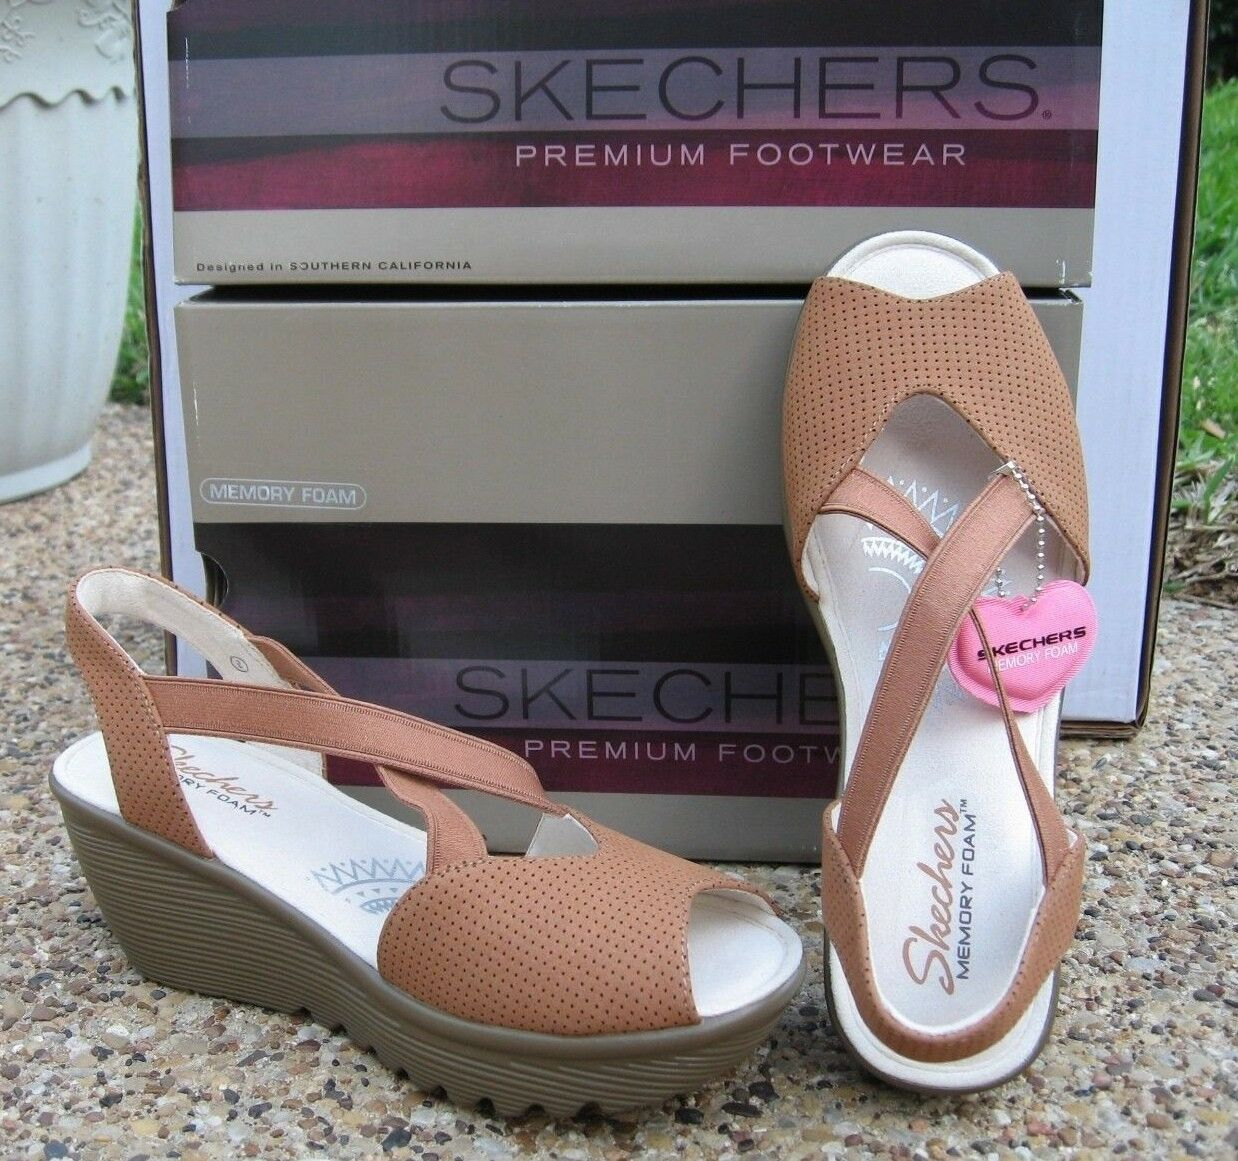 NEW Ladies SKECHERS Tan Parallel Piazza Memory Foam Comfort Sandals Style 41050